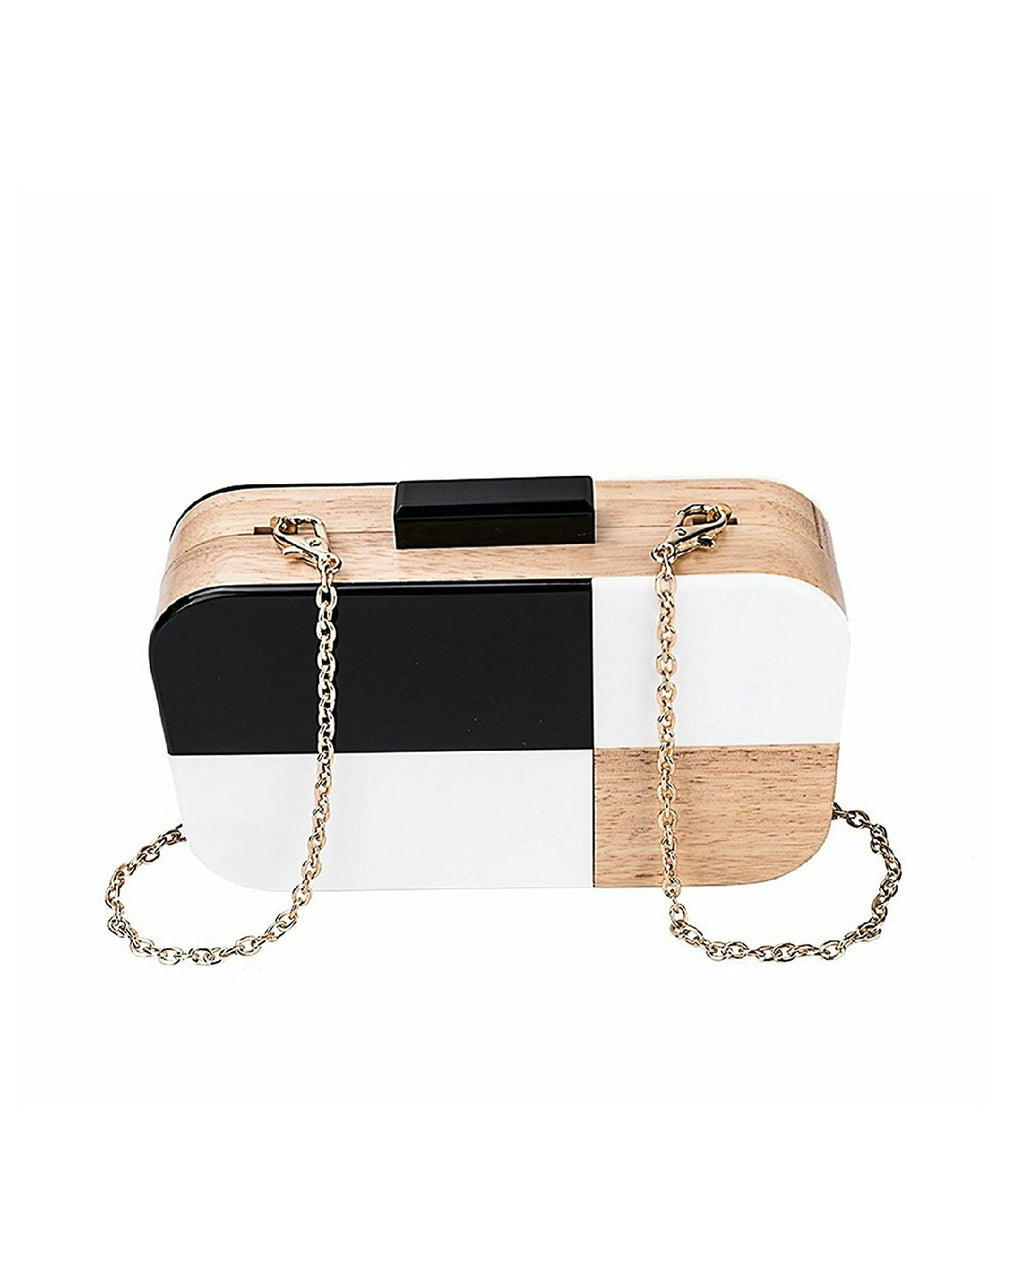 Acrylic Wood Color Block Evening Clutch